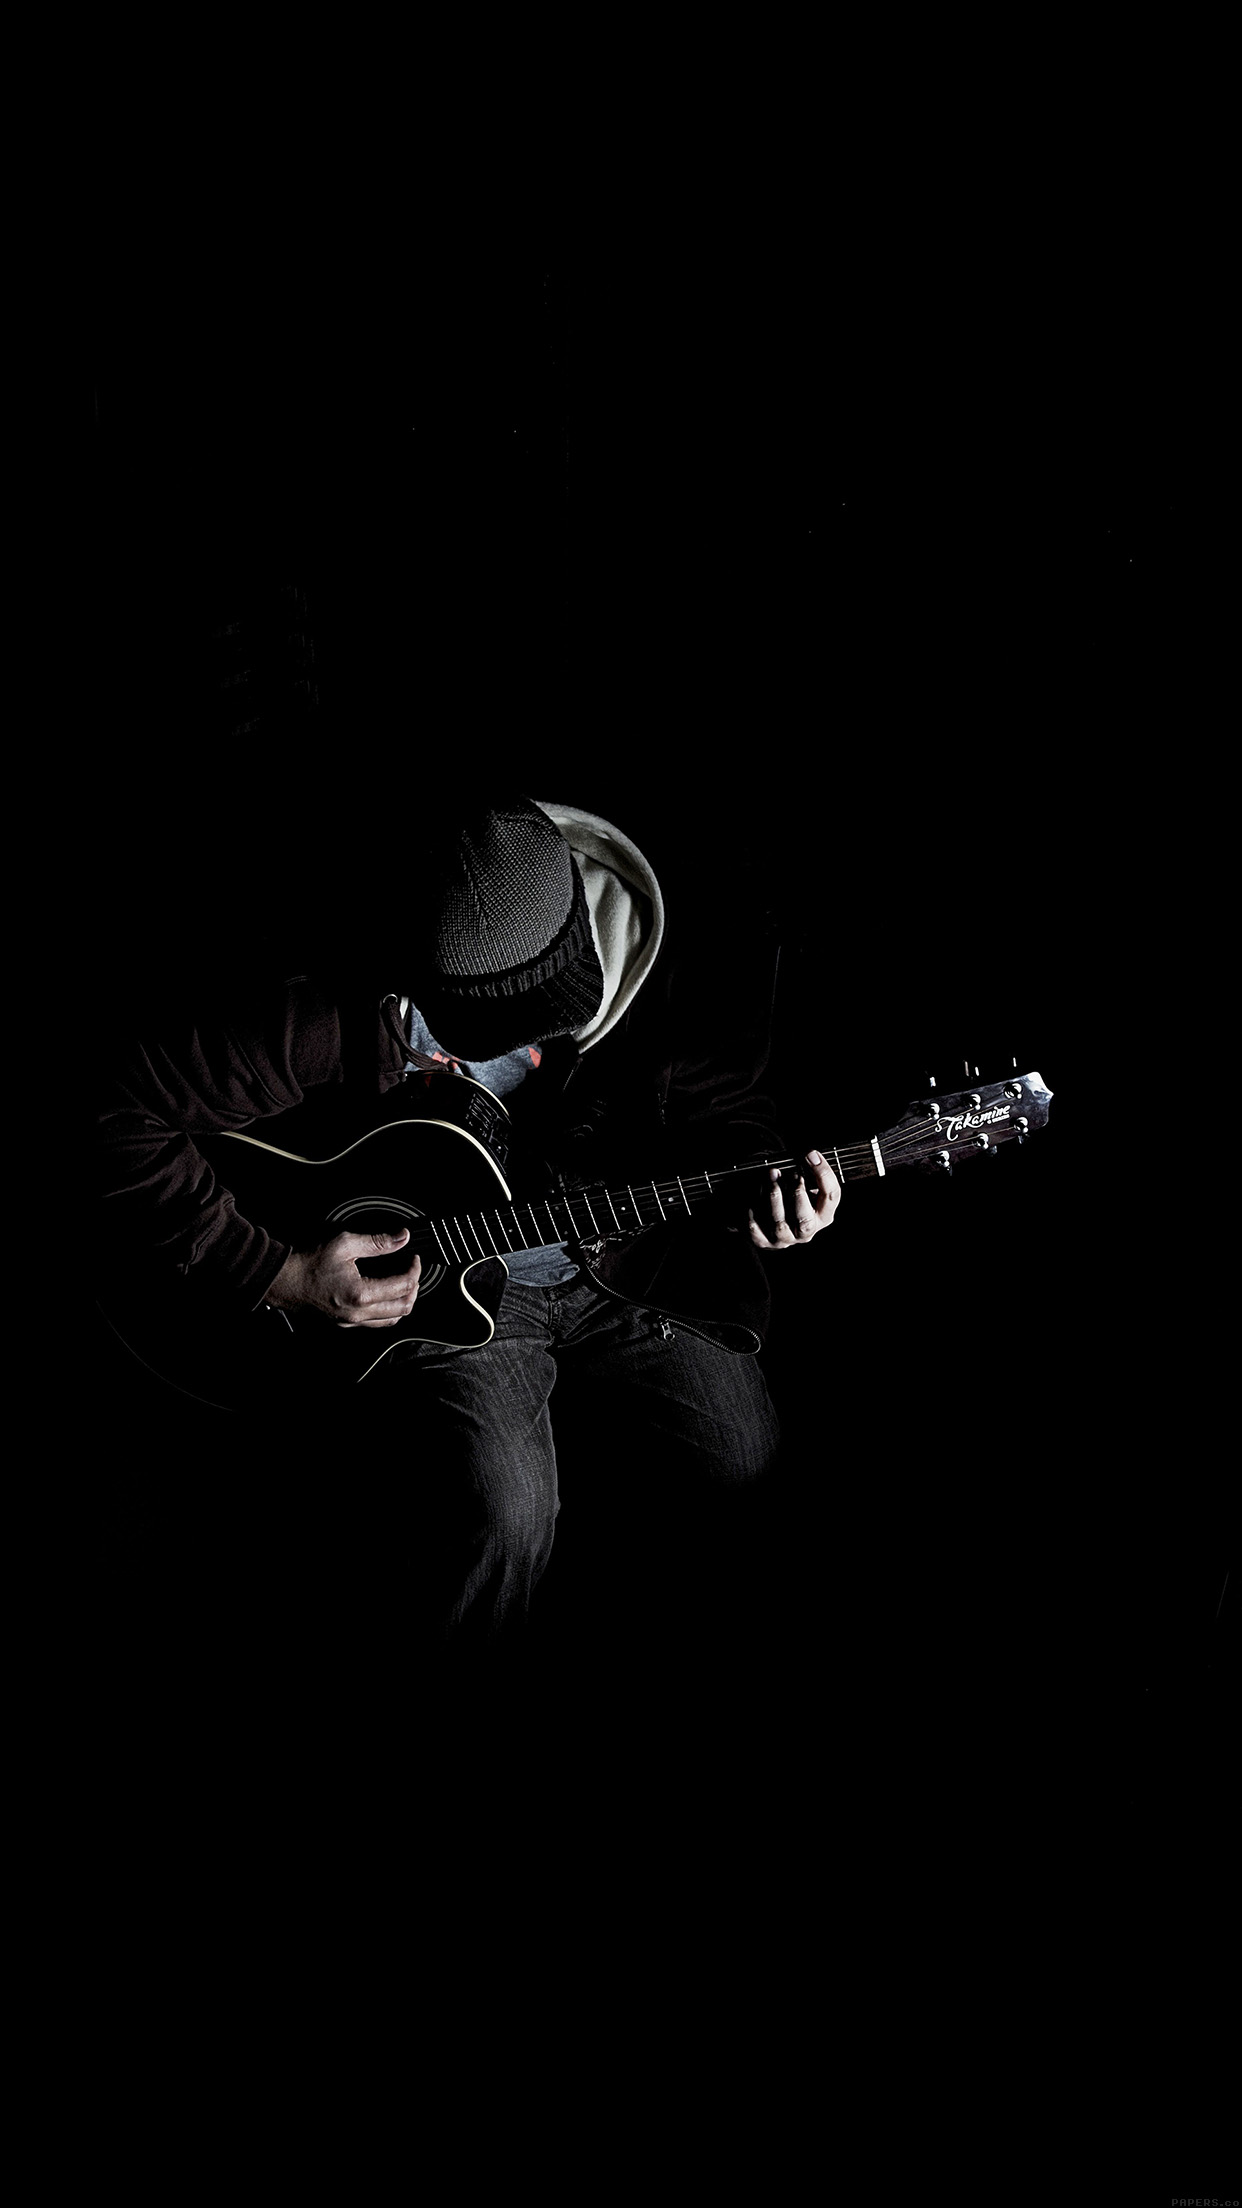 out the dark guitar player music android wallpaper android hd wallpapers